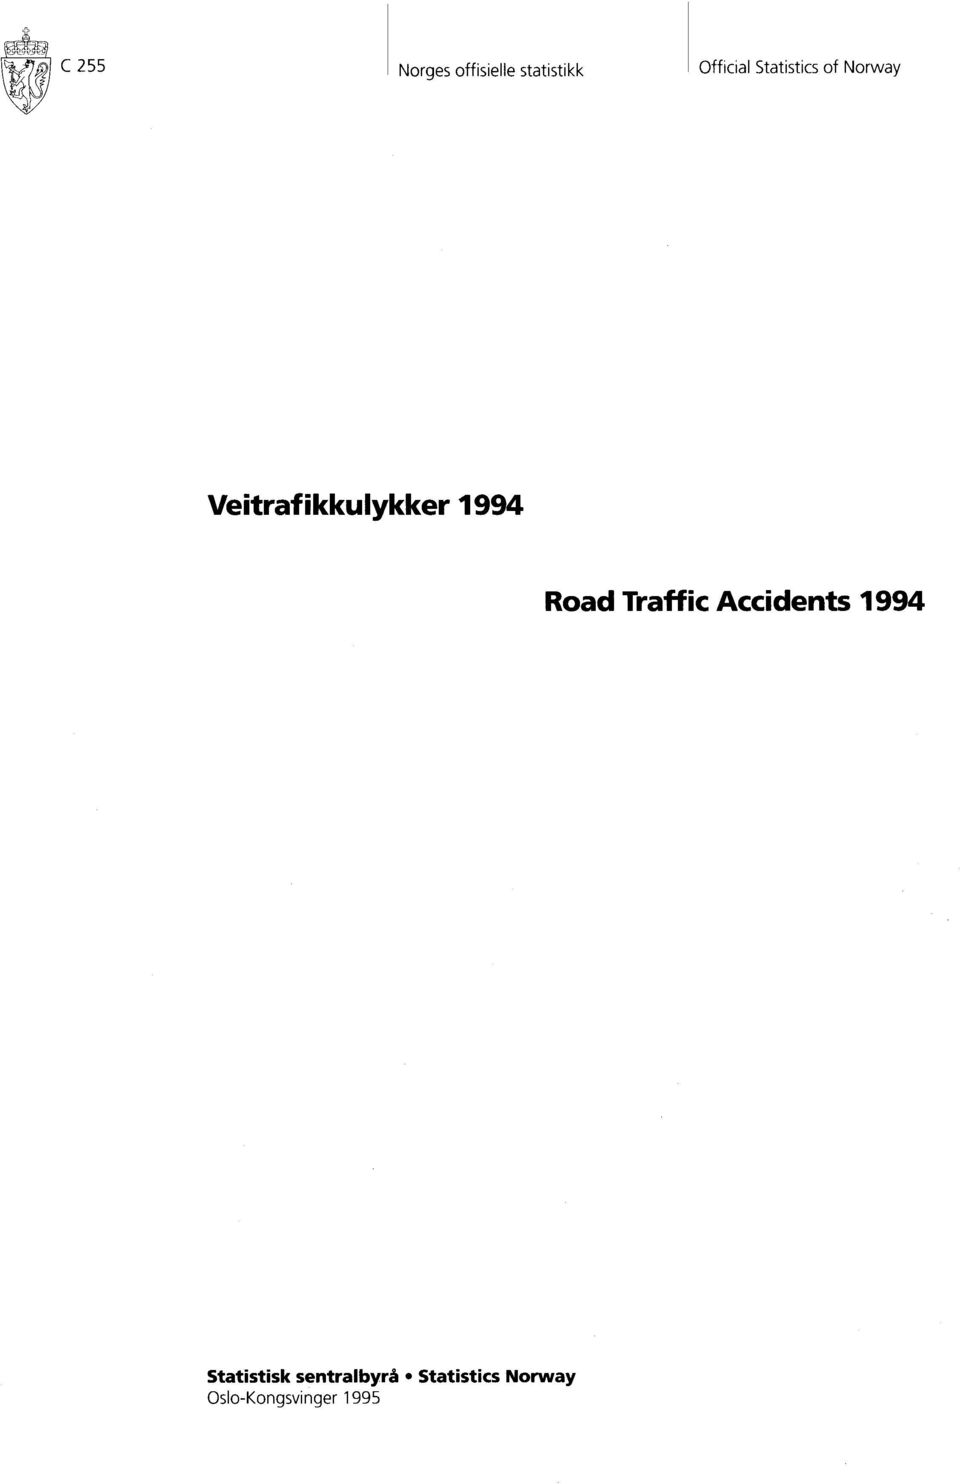 Road Traffic Accidents 1994 Statistisk